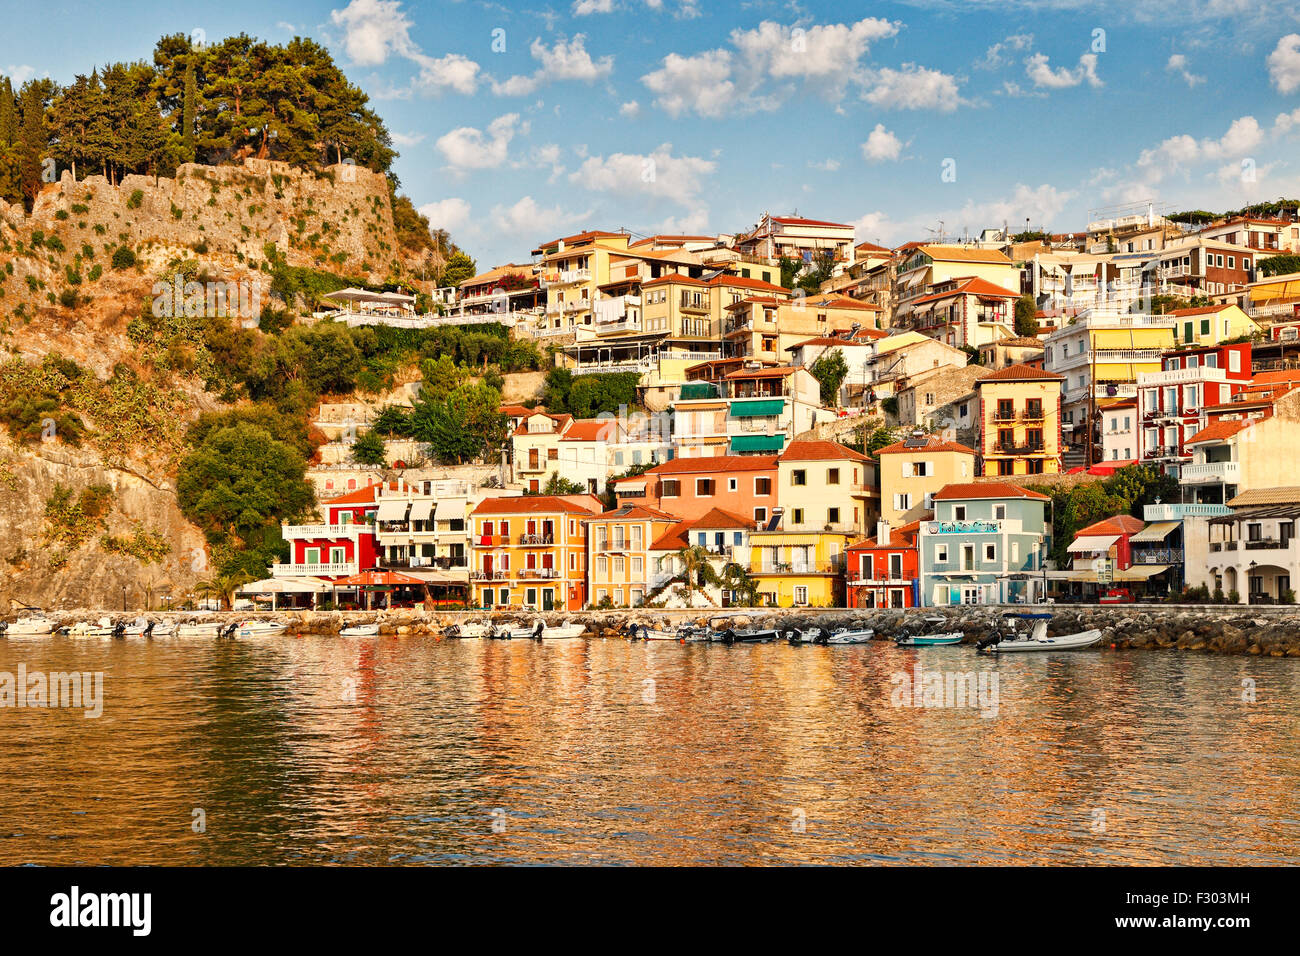 The colorful houses of Parga, Greece - Stock Image